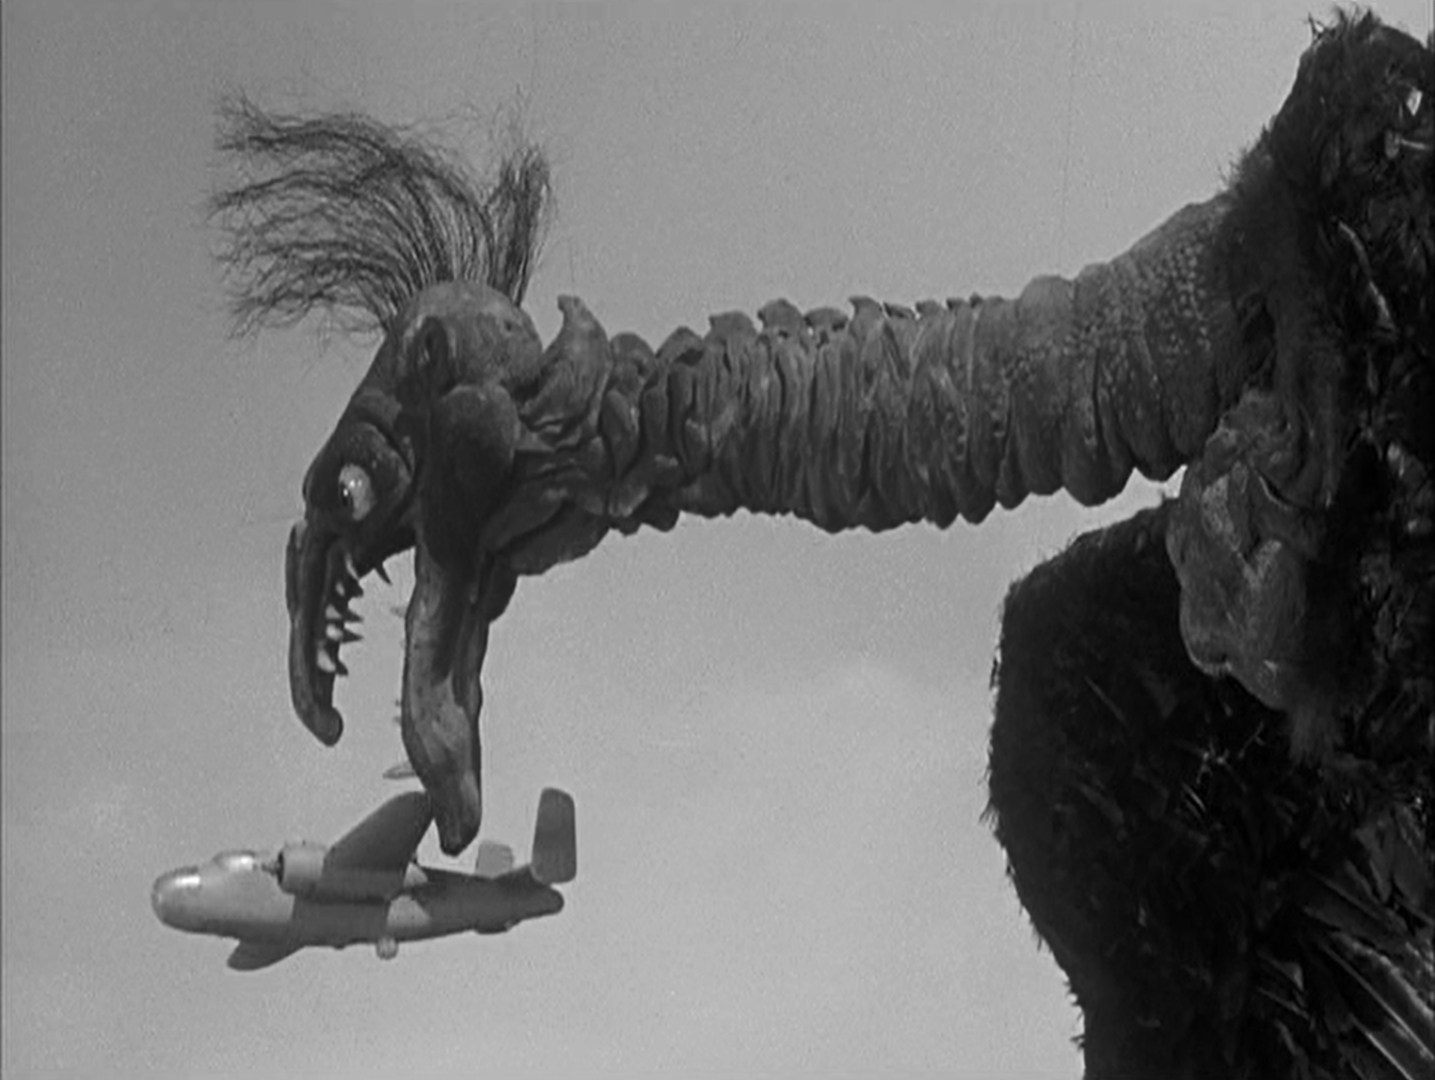 The giant alien bird attacks a plane in The Giant Claw (1957) - perhaps the most pathetic and ridiculous monster in the history of the monster movie